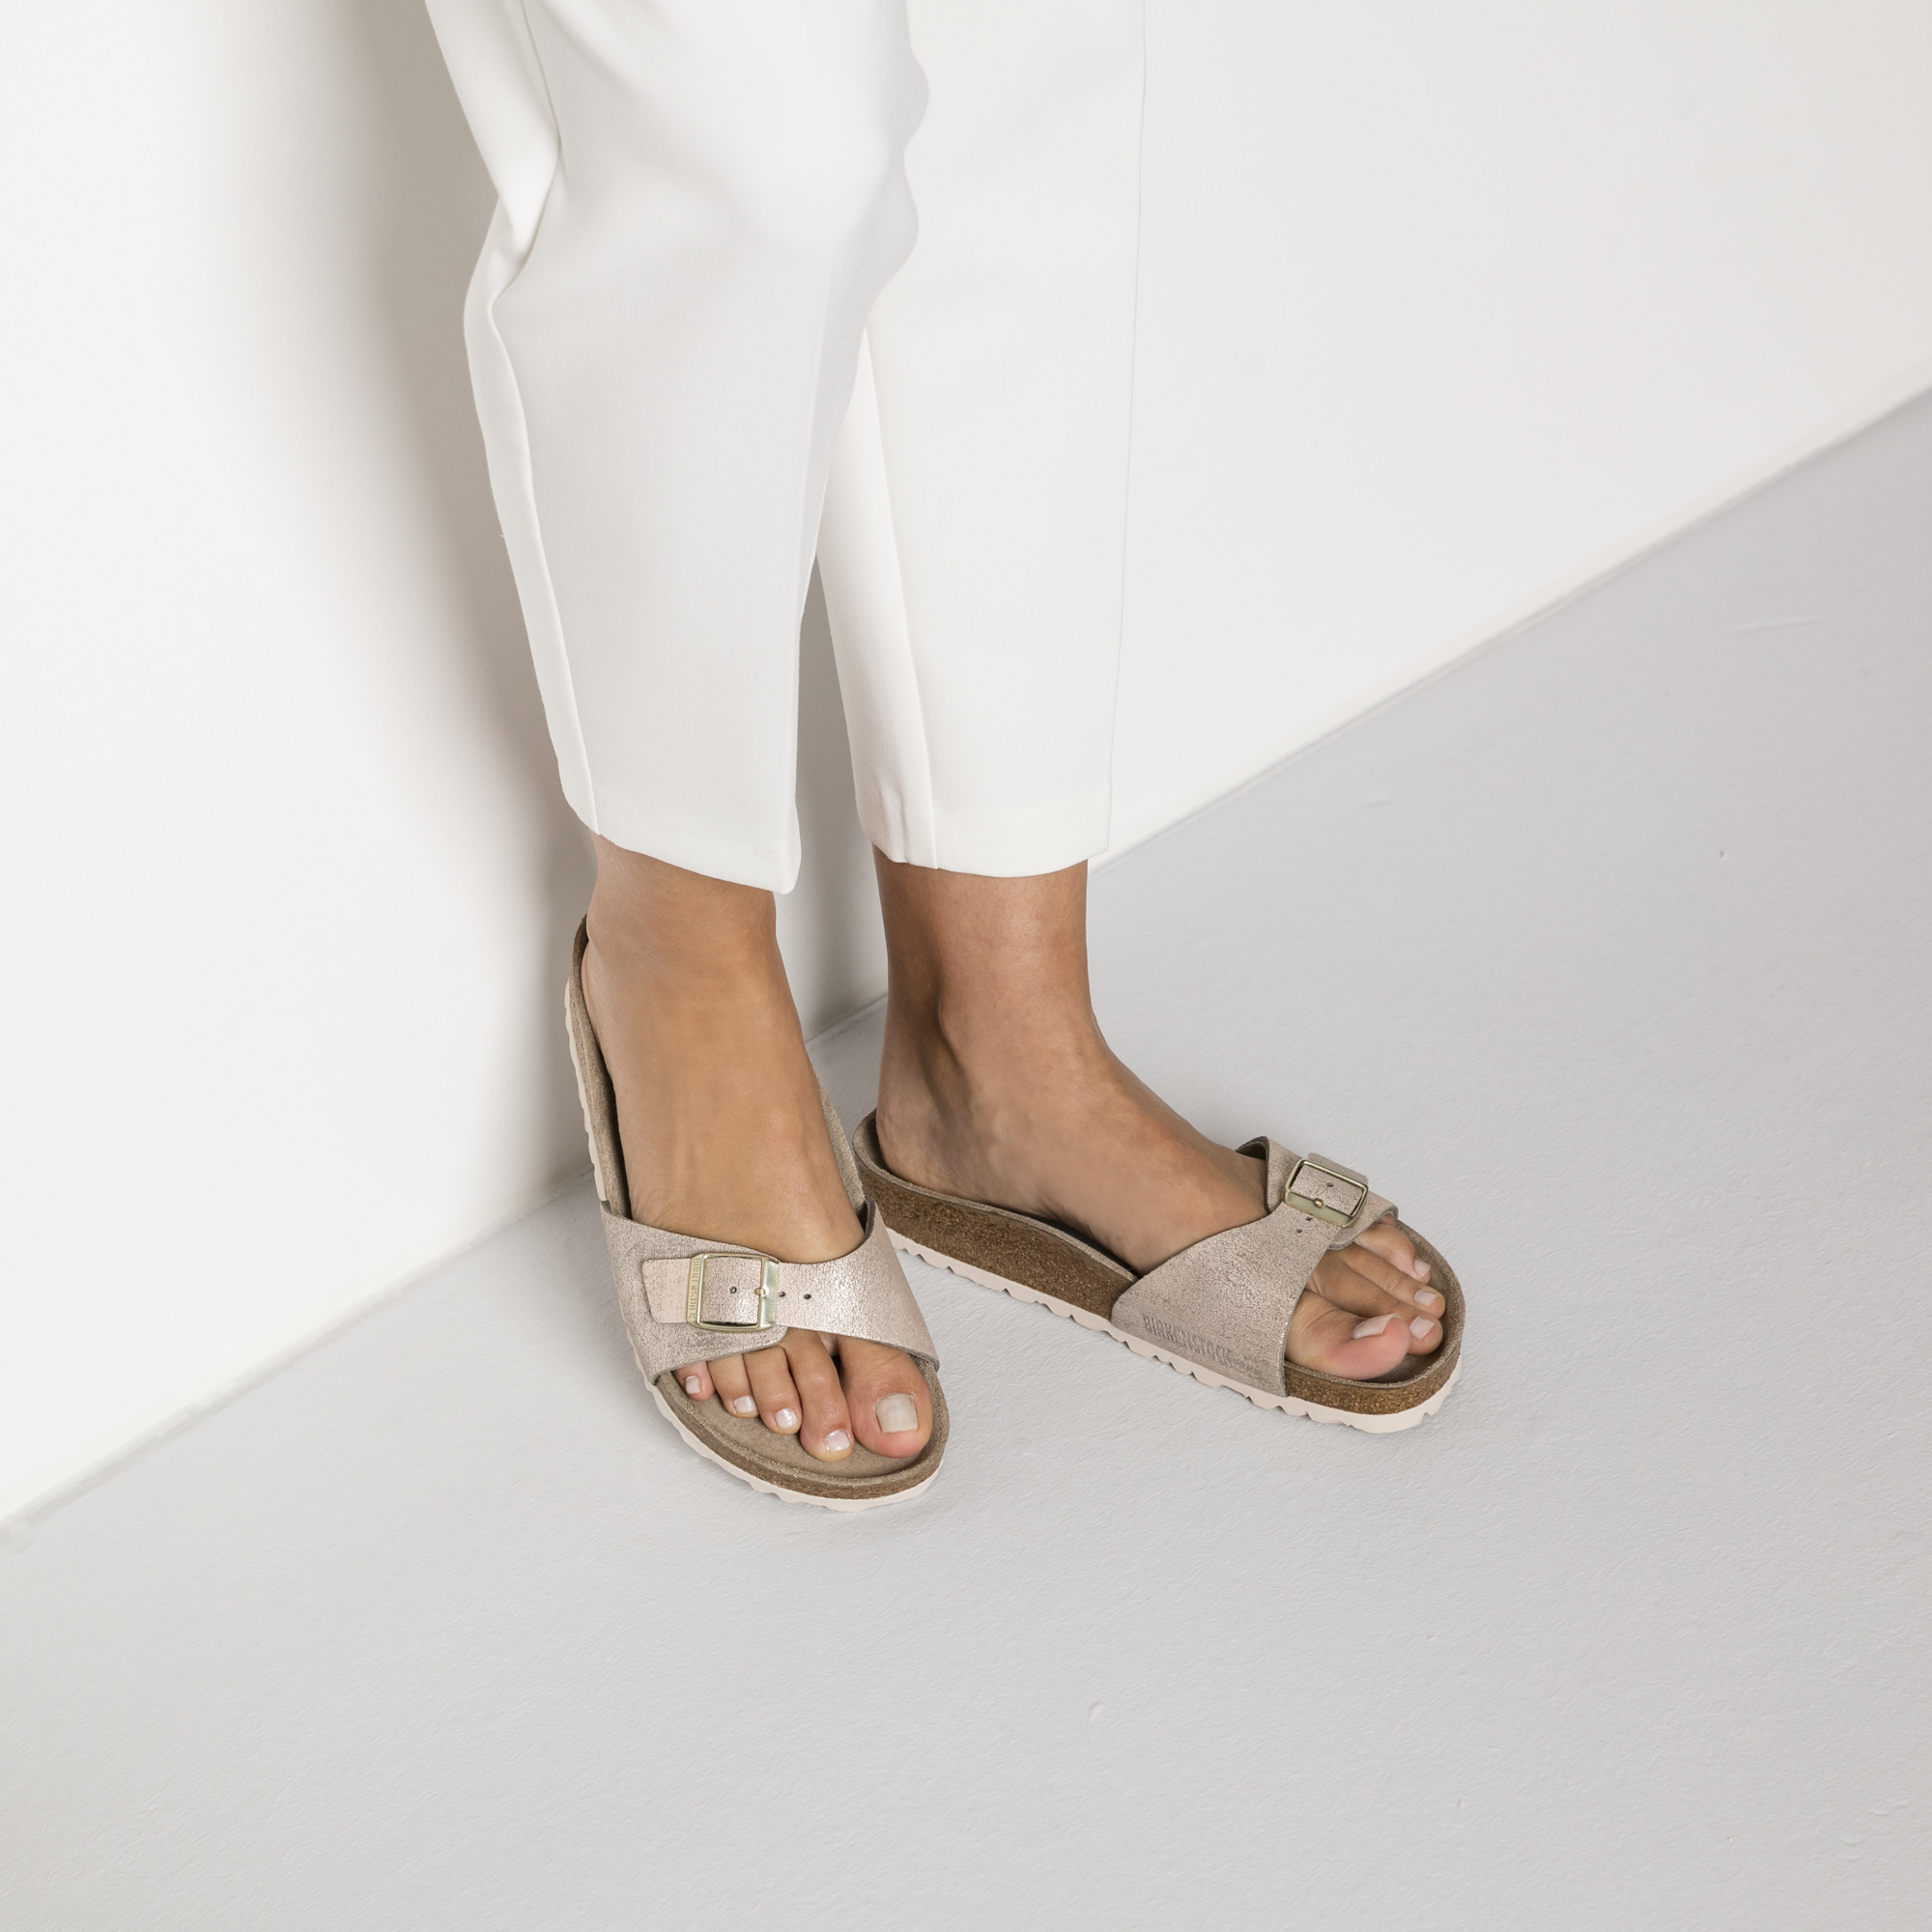 Birkenstock Damen Madrid rosé Gold metallic